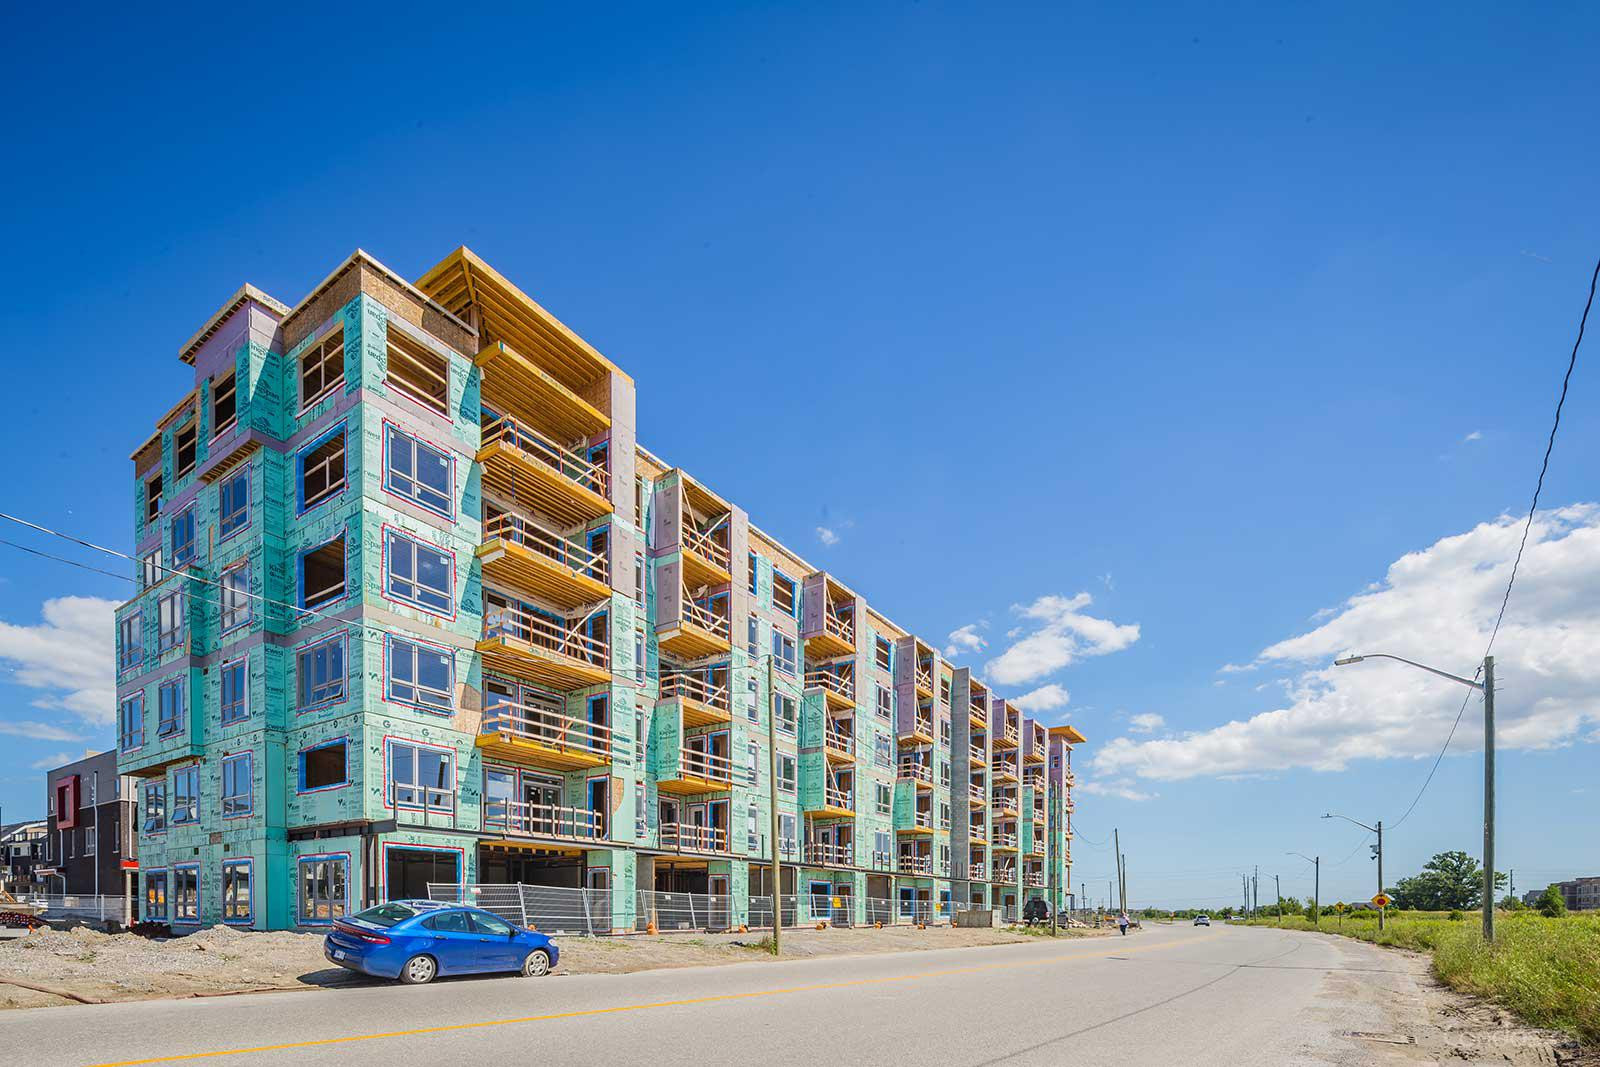 The Condominiums of Cornell at 3150 Bur Oak Ave, Markham 0